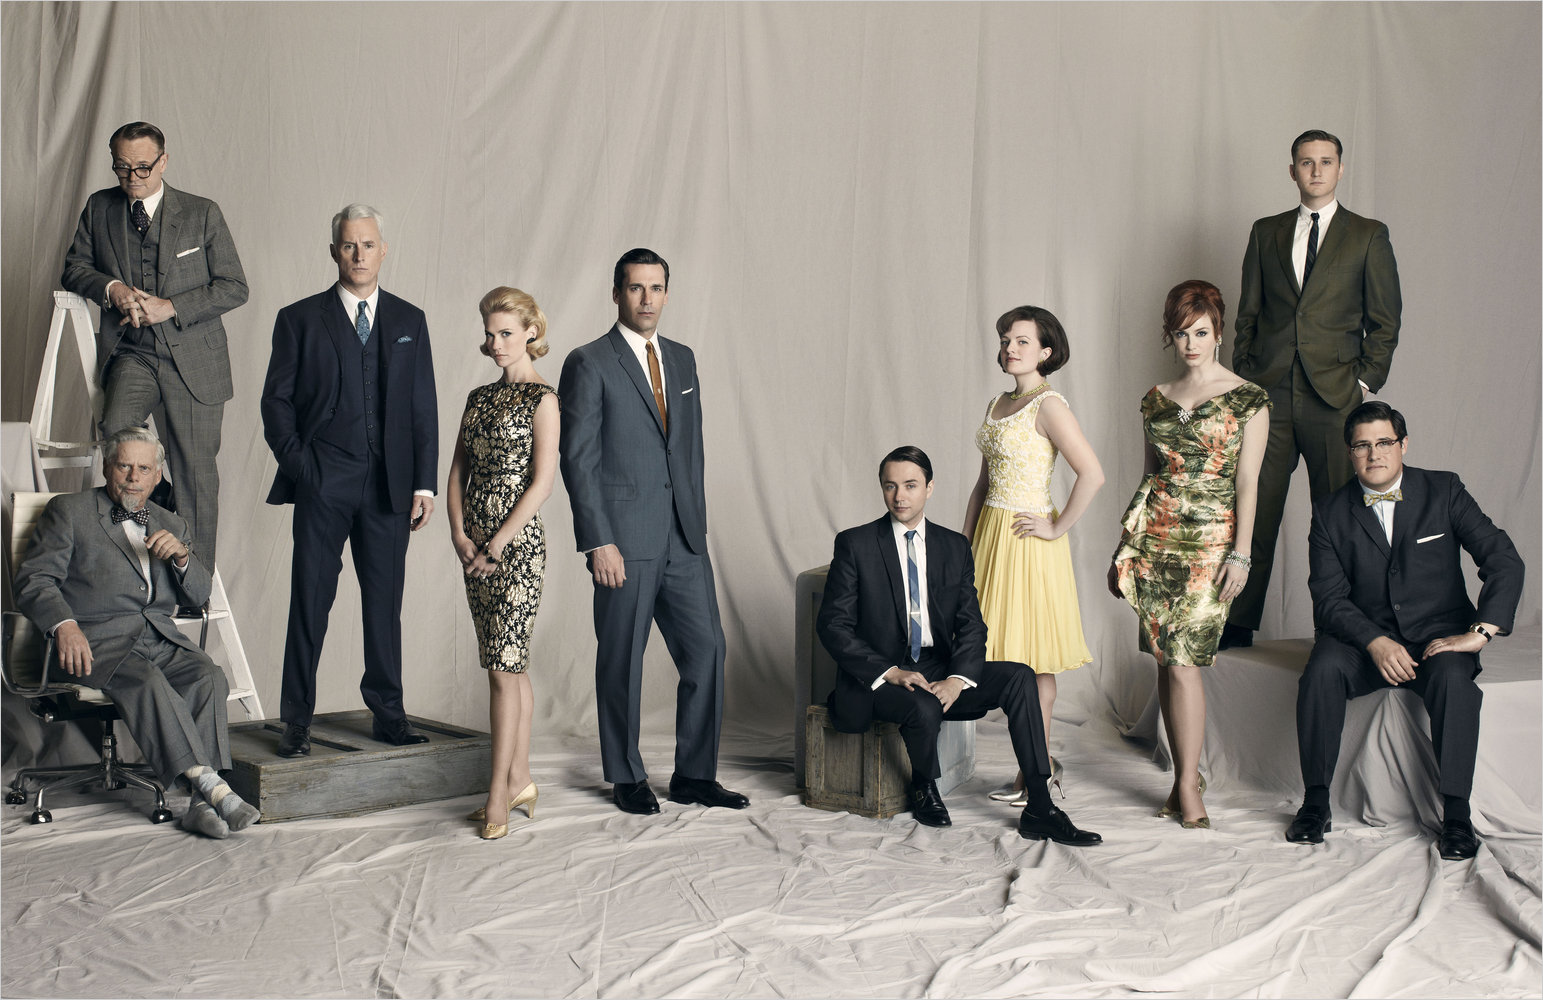 Welcome to Sterling Cooper Draper PRIES OFF YOUR FACE. (Yeesh. A bit of a stretch.)